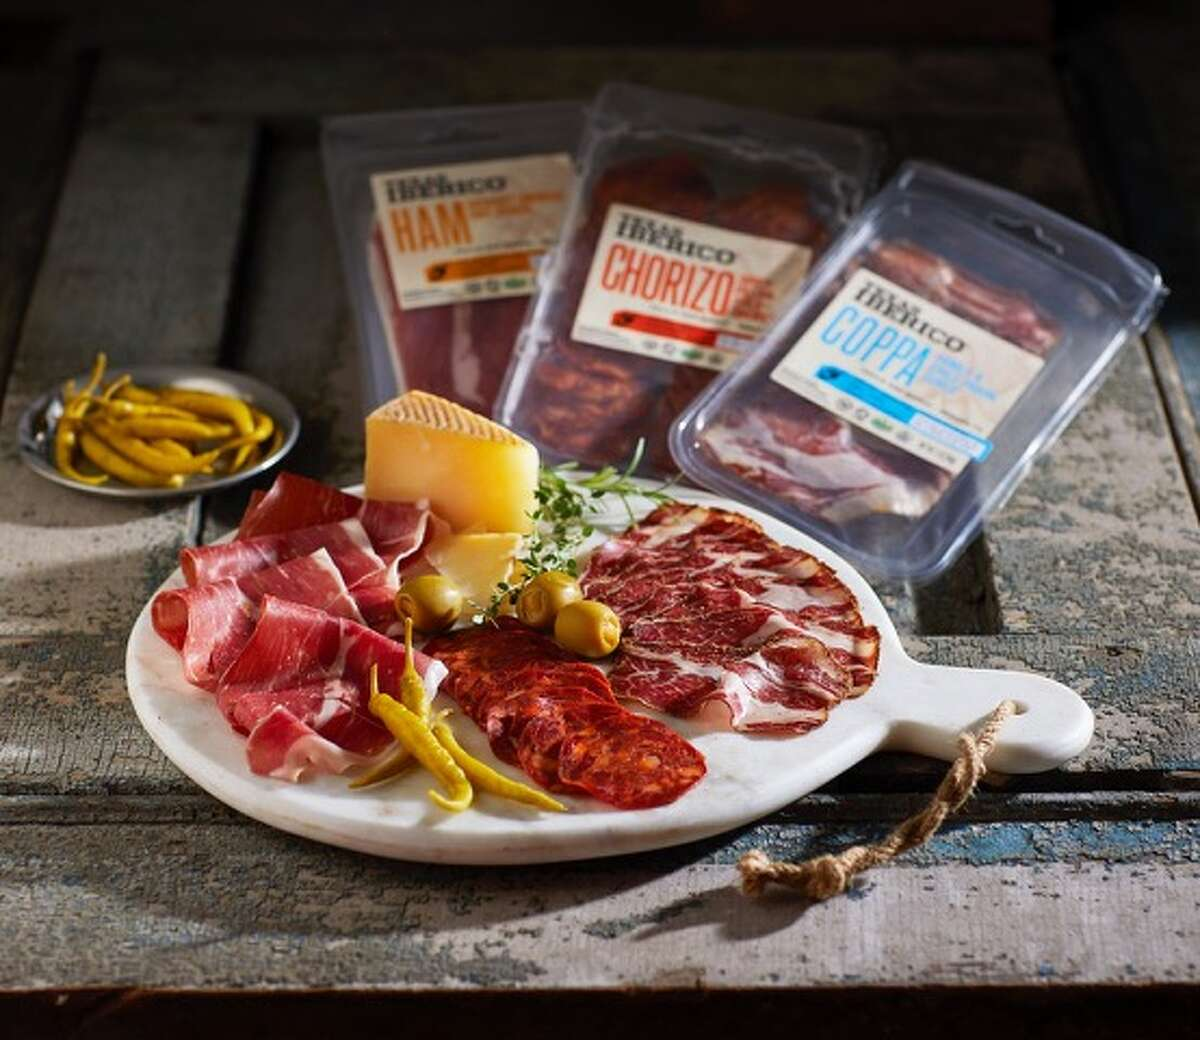 This locally made ham blends the best of European with South Texas flavors.